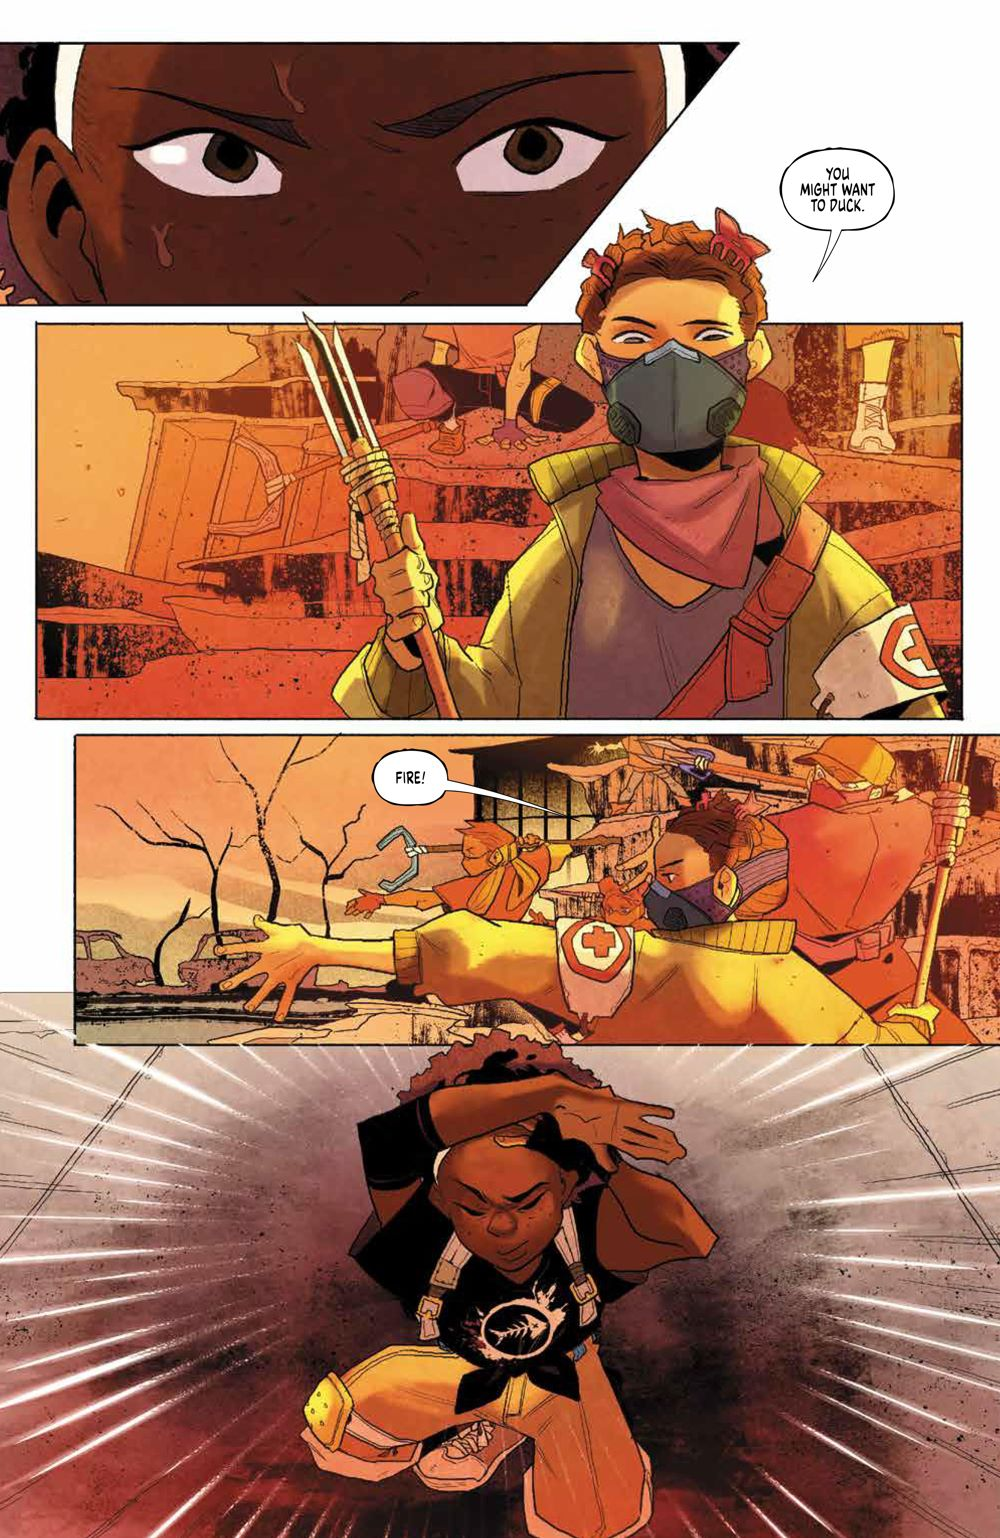 Eve_003_PRESS_3 ComicList Previews: EVE #3 (OF 5)